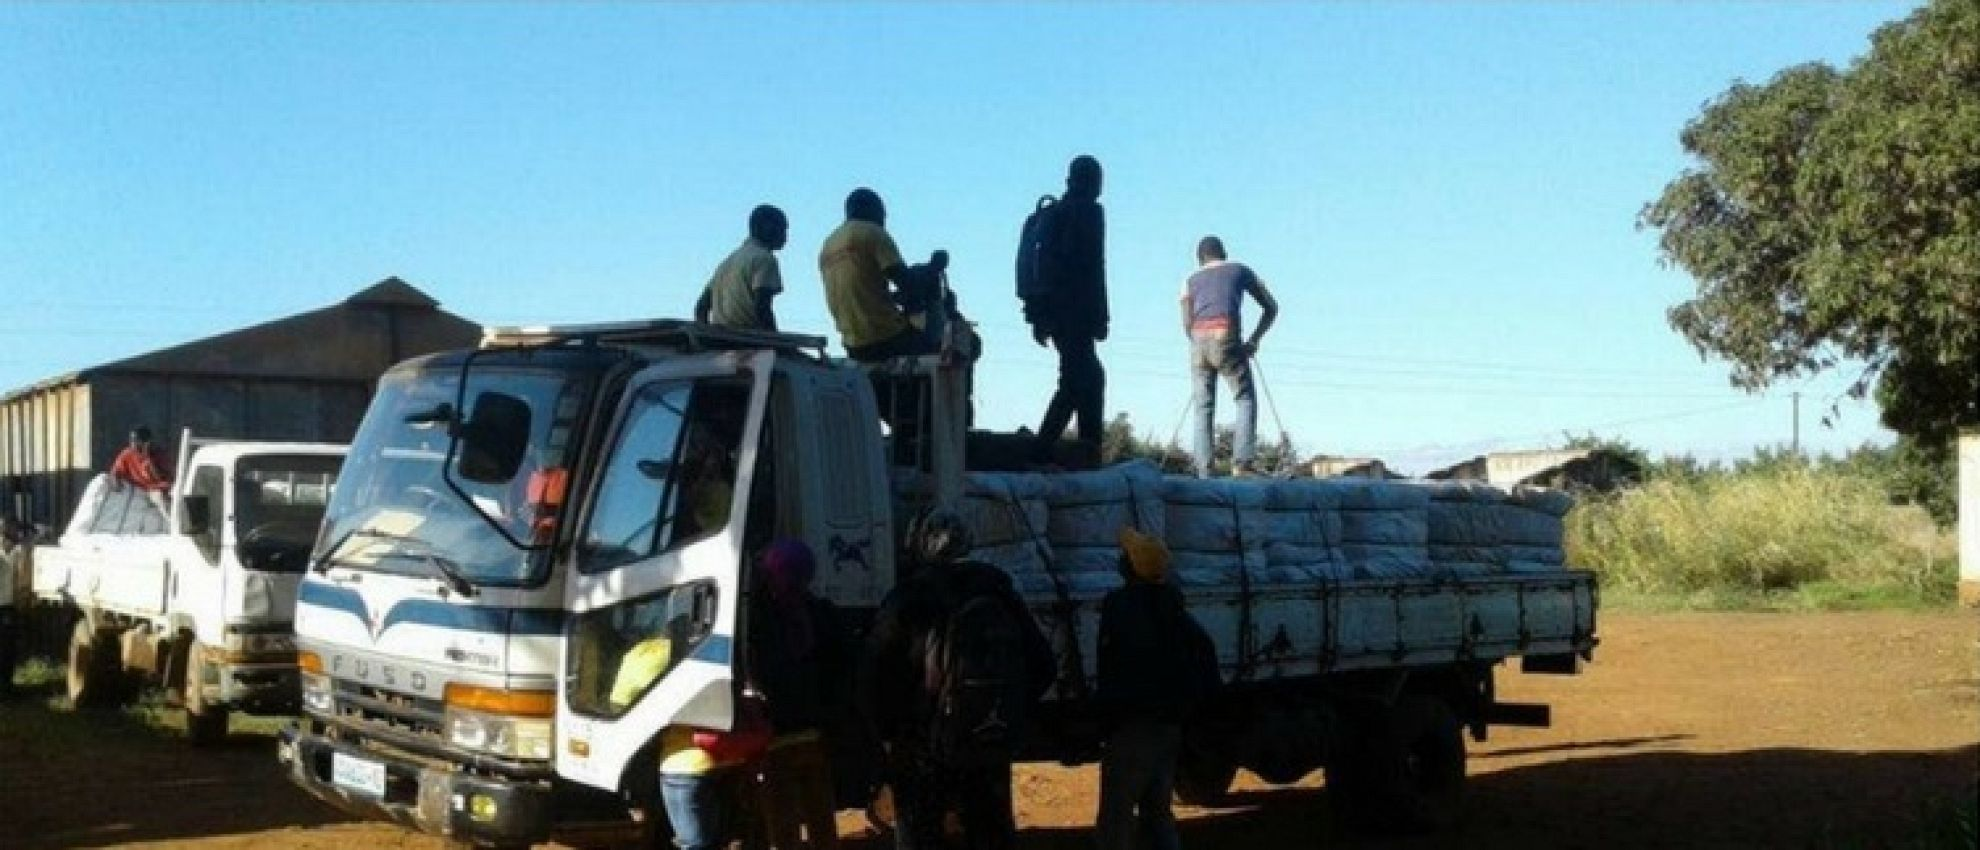 Latest News Four million nets distributed in mozambique